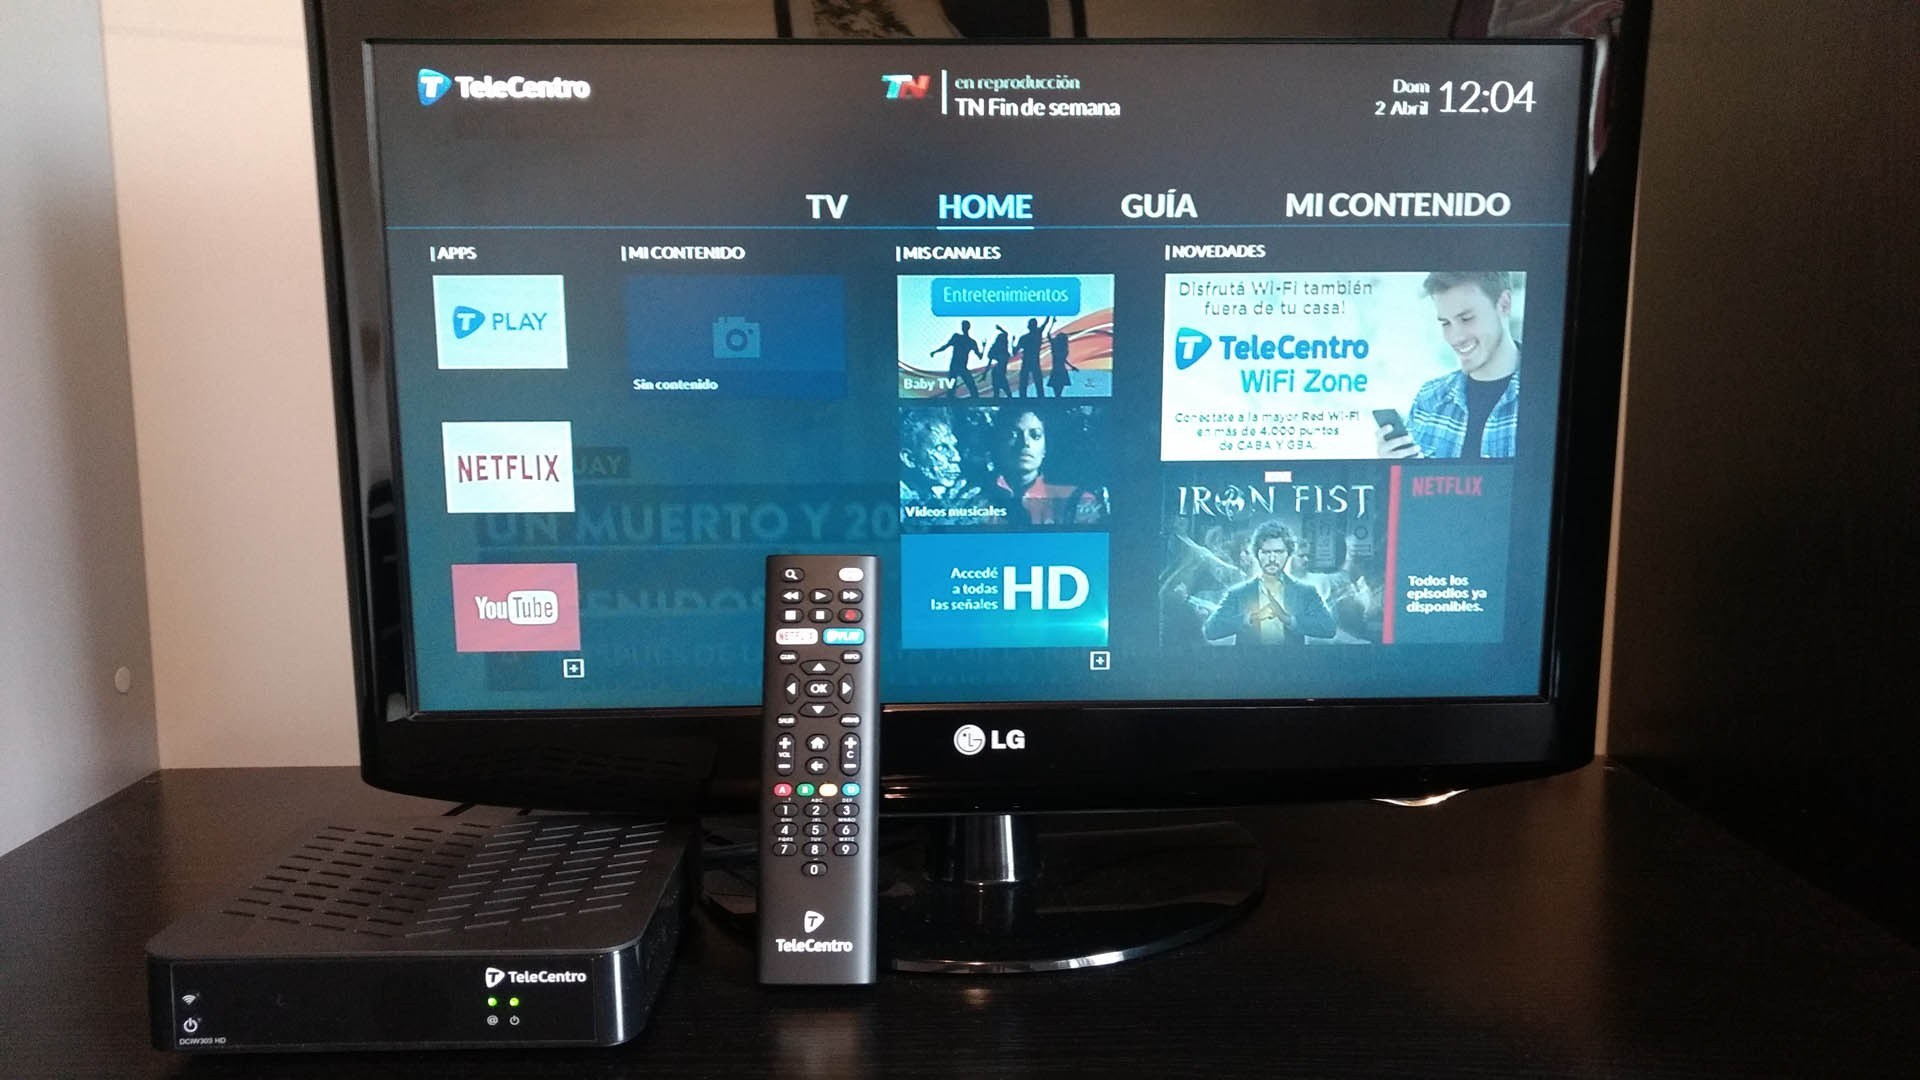 Come registrare programmi, film e serie su una Smart TV? 3